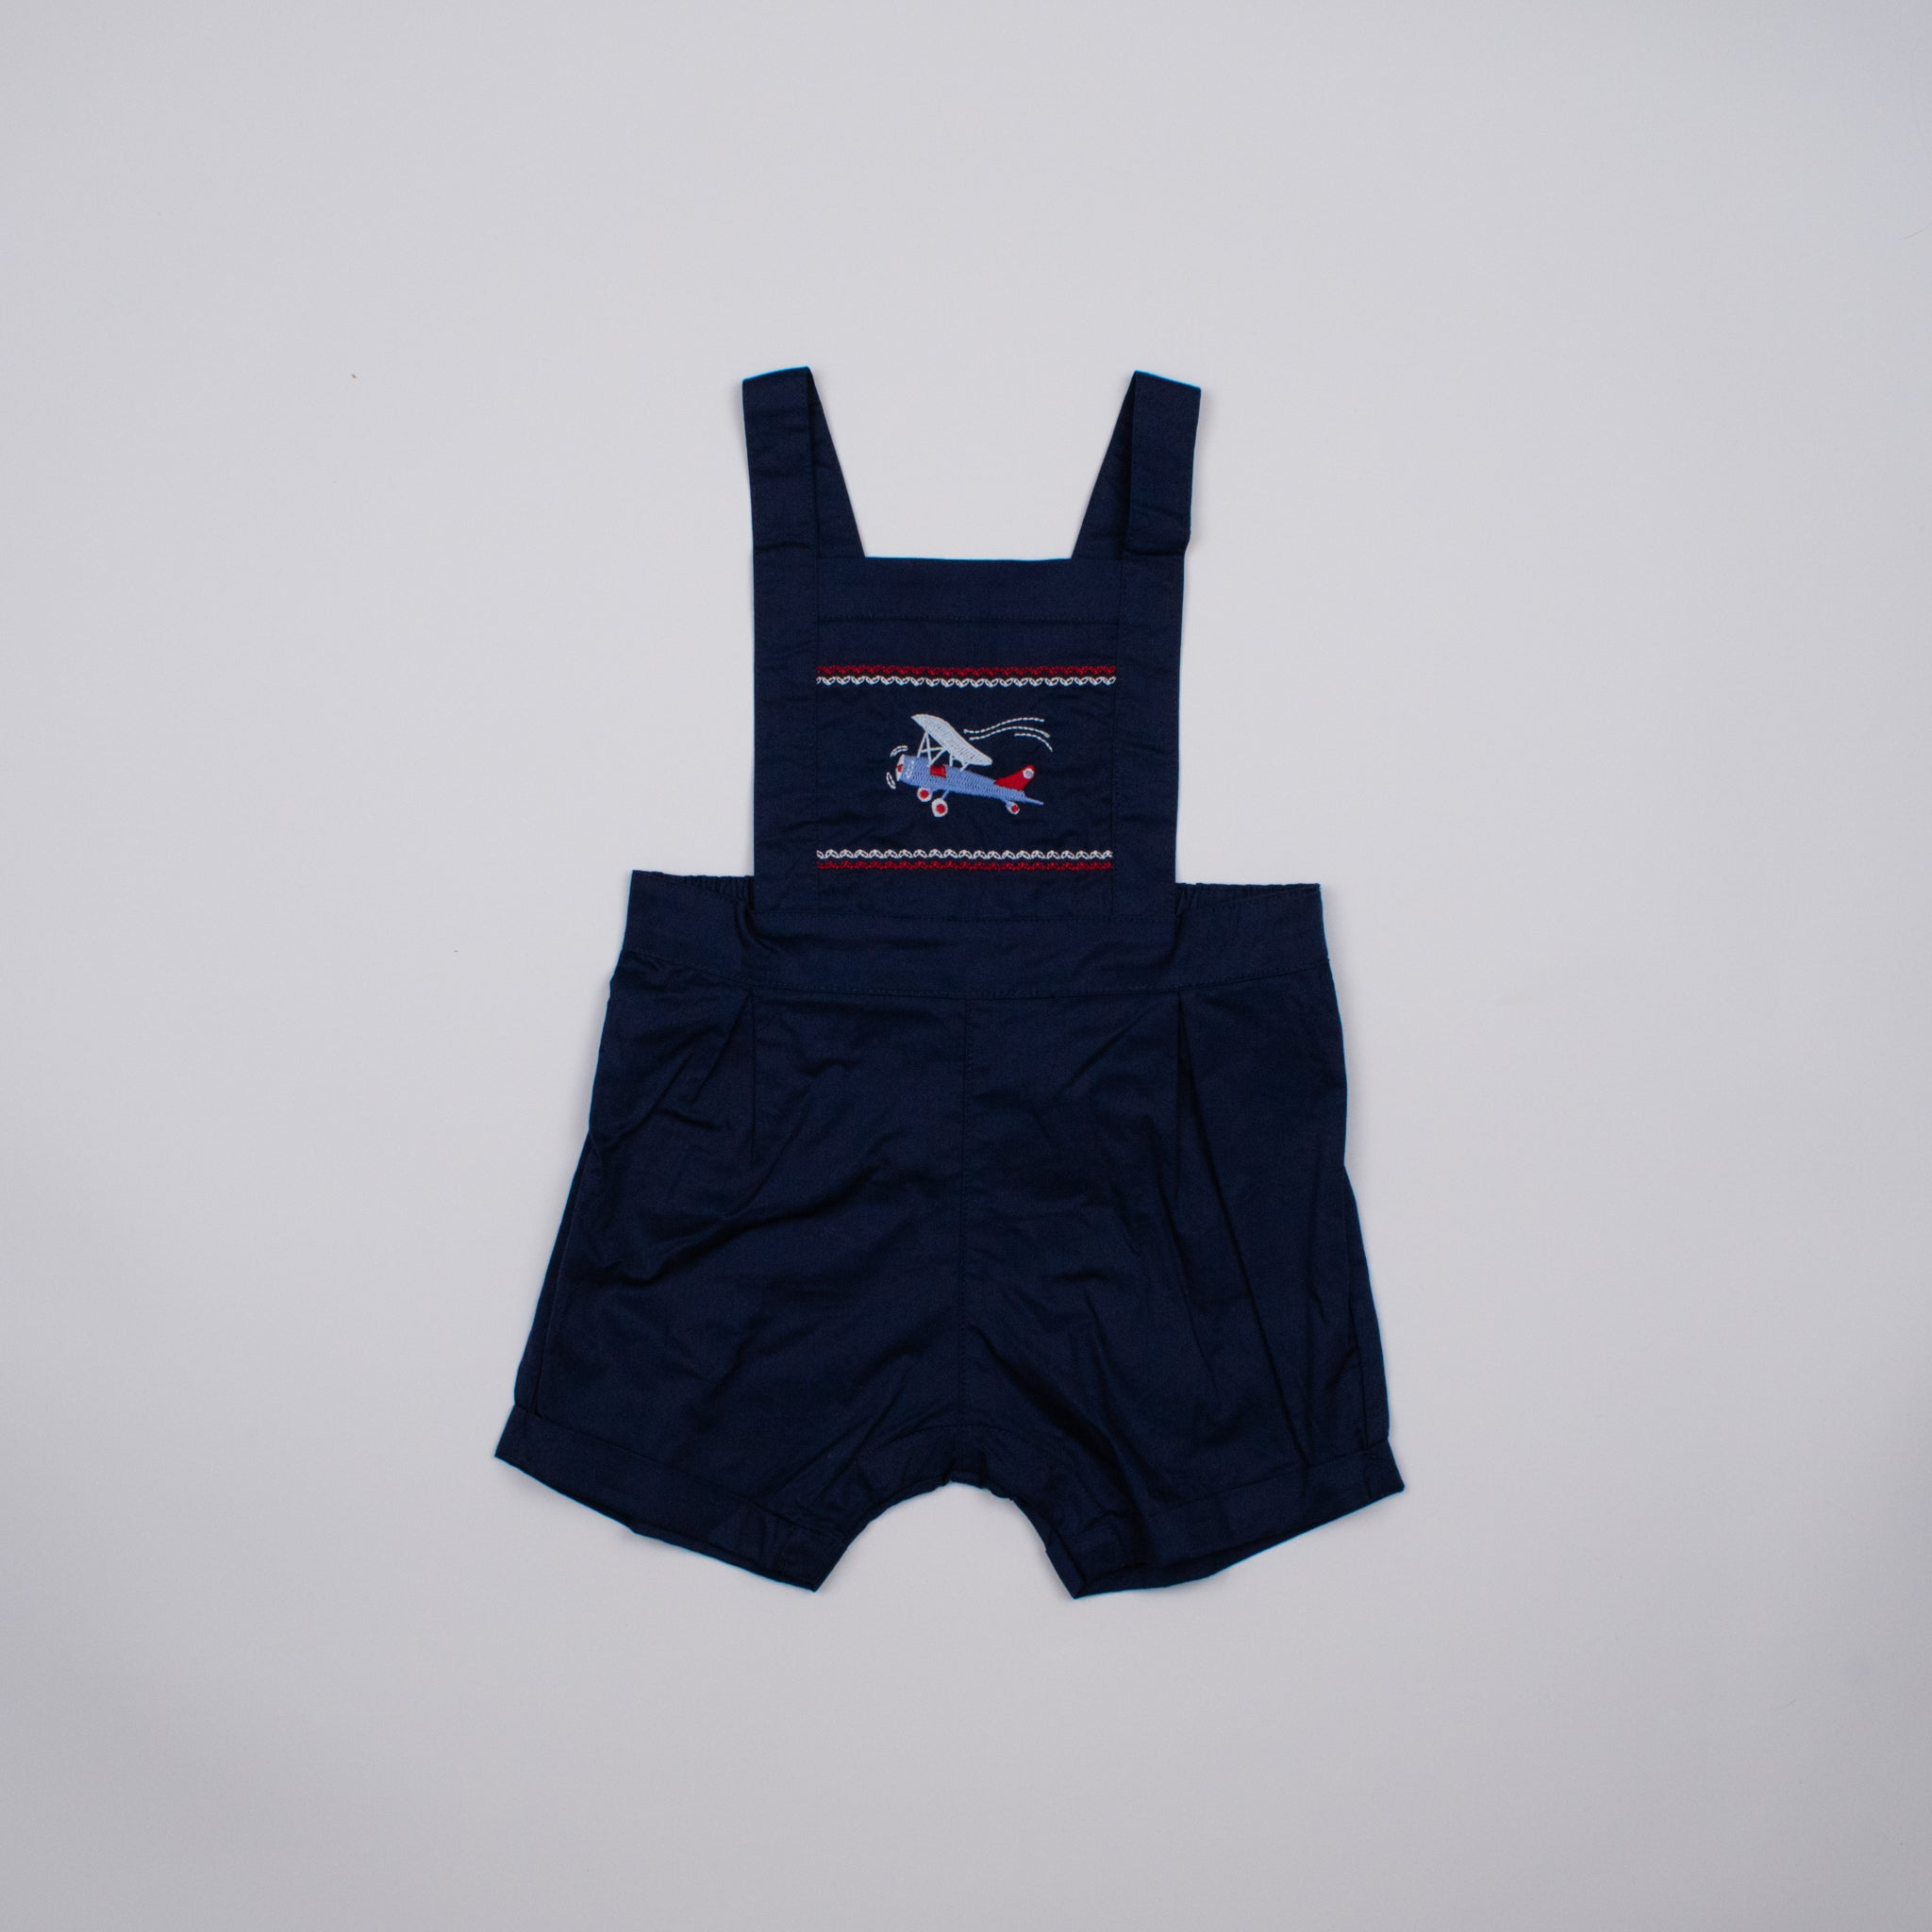 Navy Airplane Overalls 0-1Y